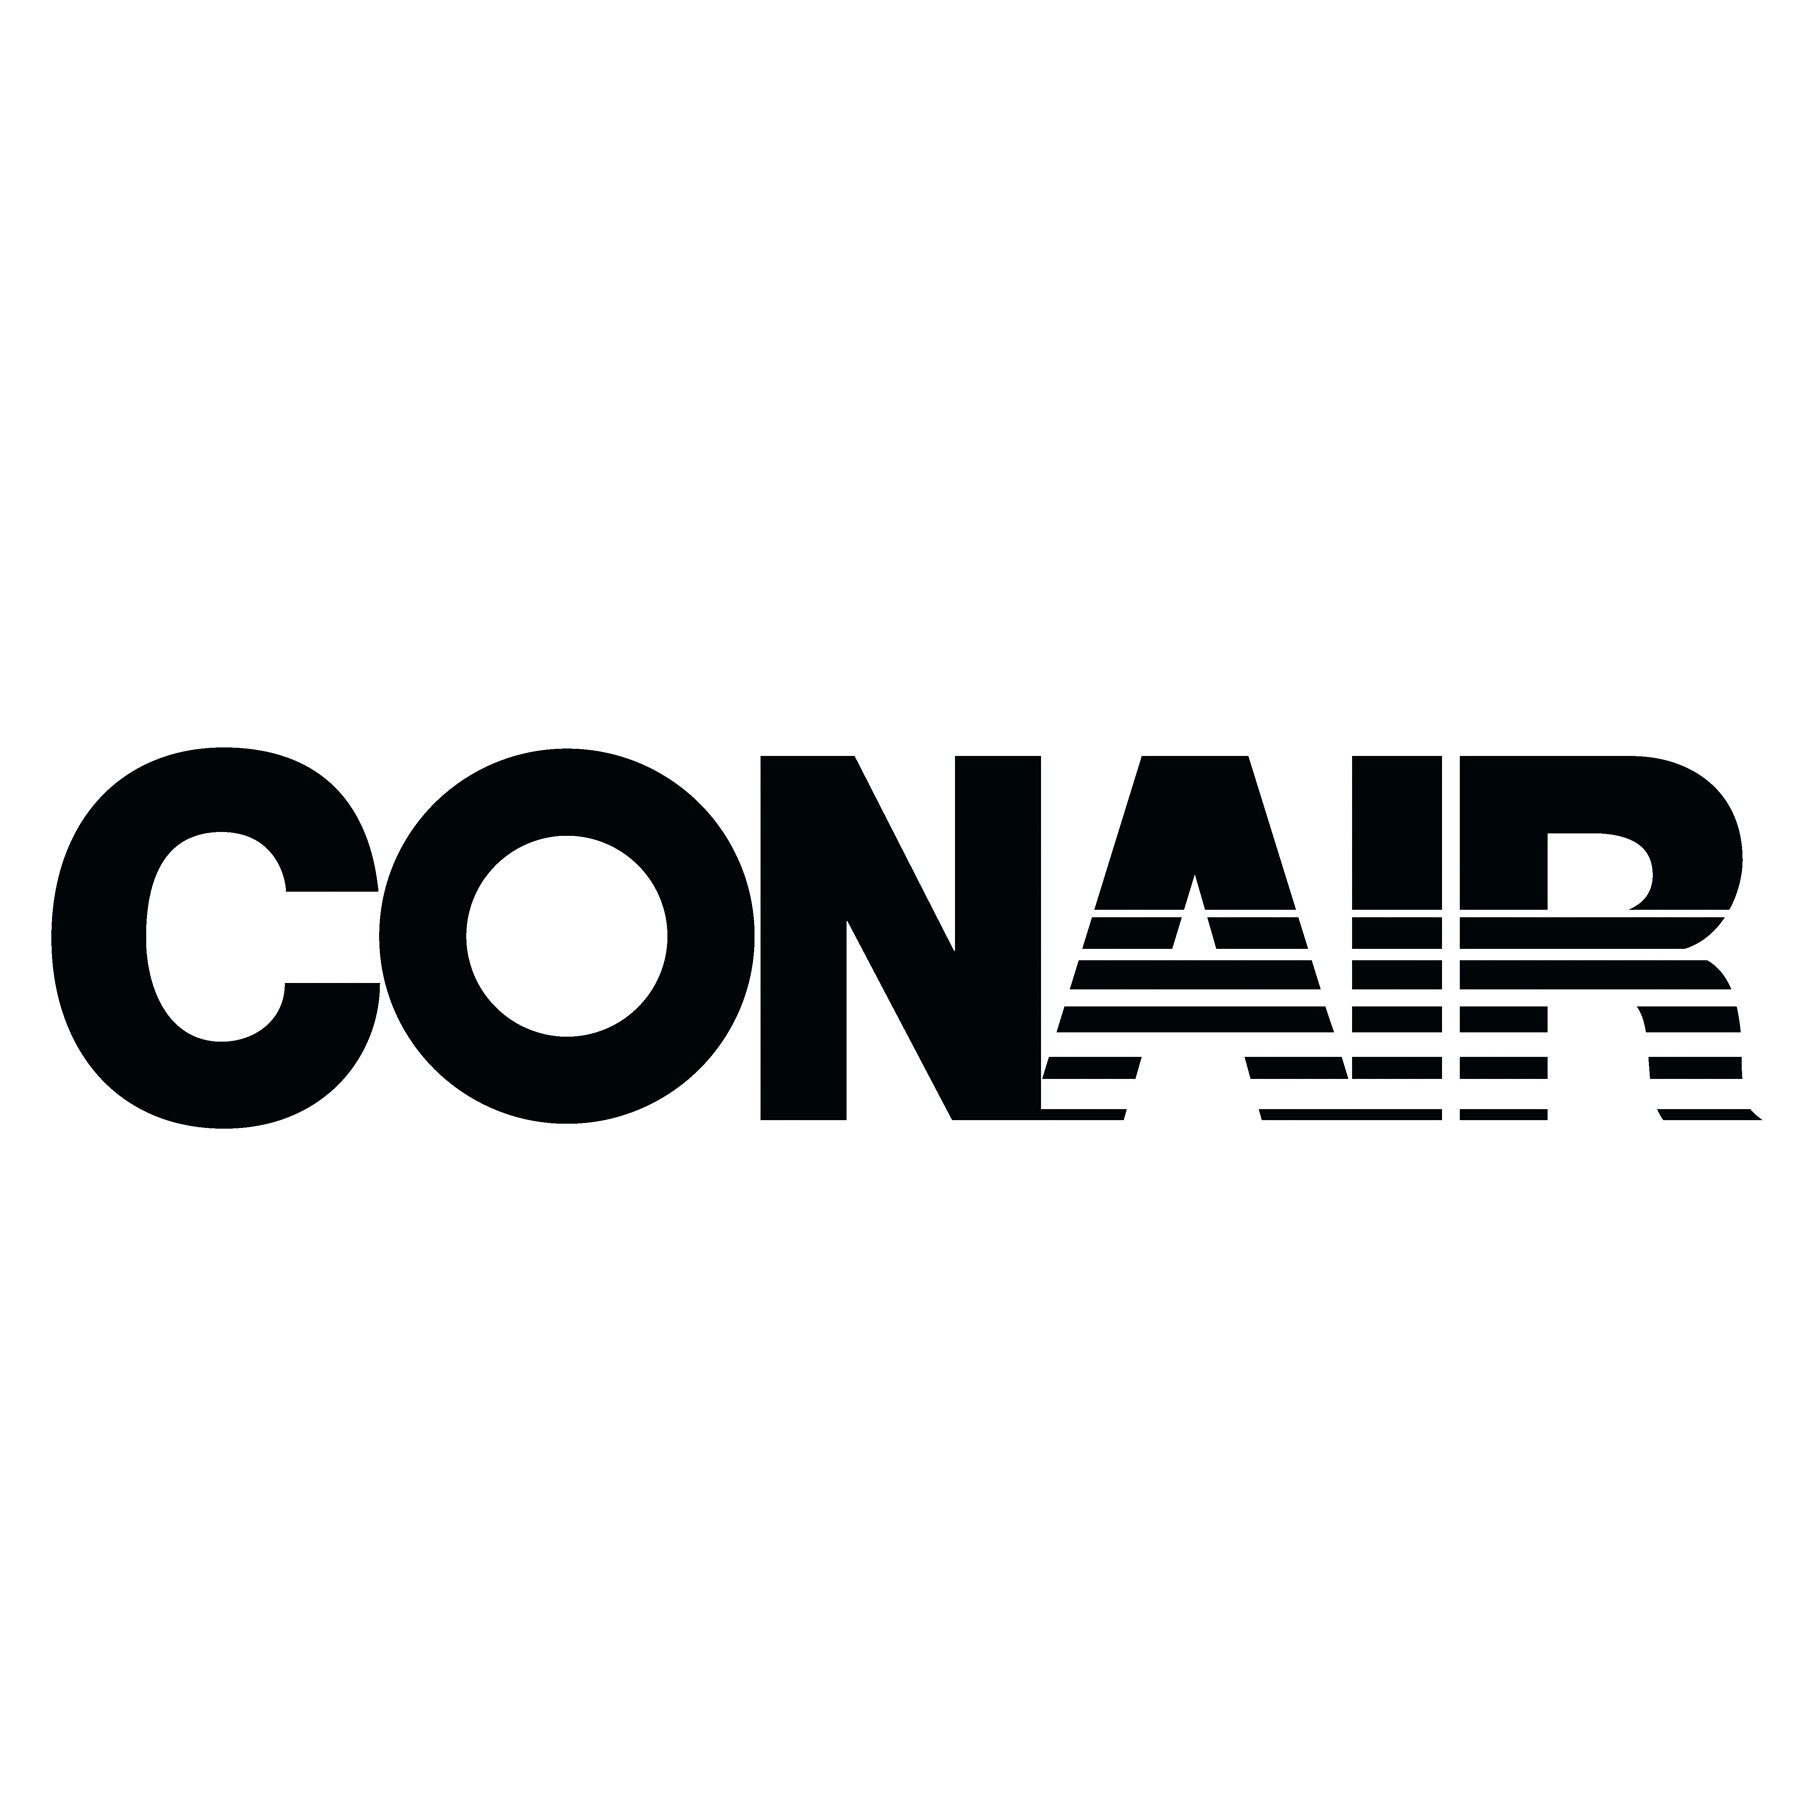 image relating to Conair Printable Coupons called Conair Discount coupons - The Krazy Coupon Girl